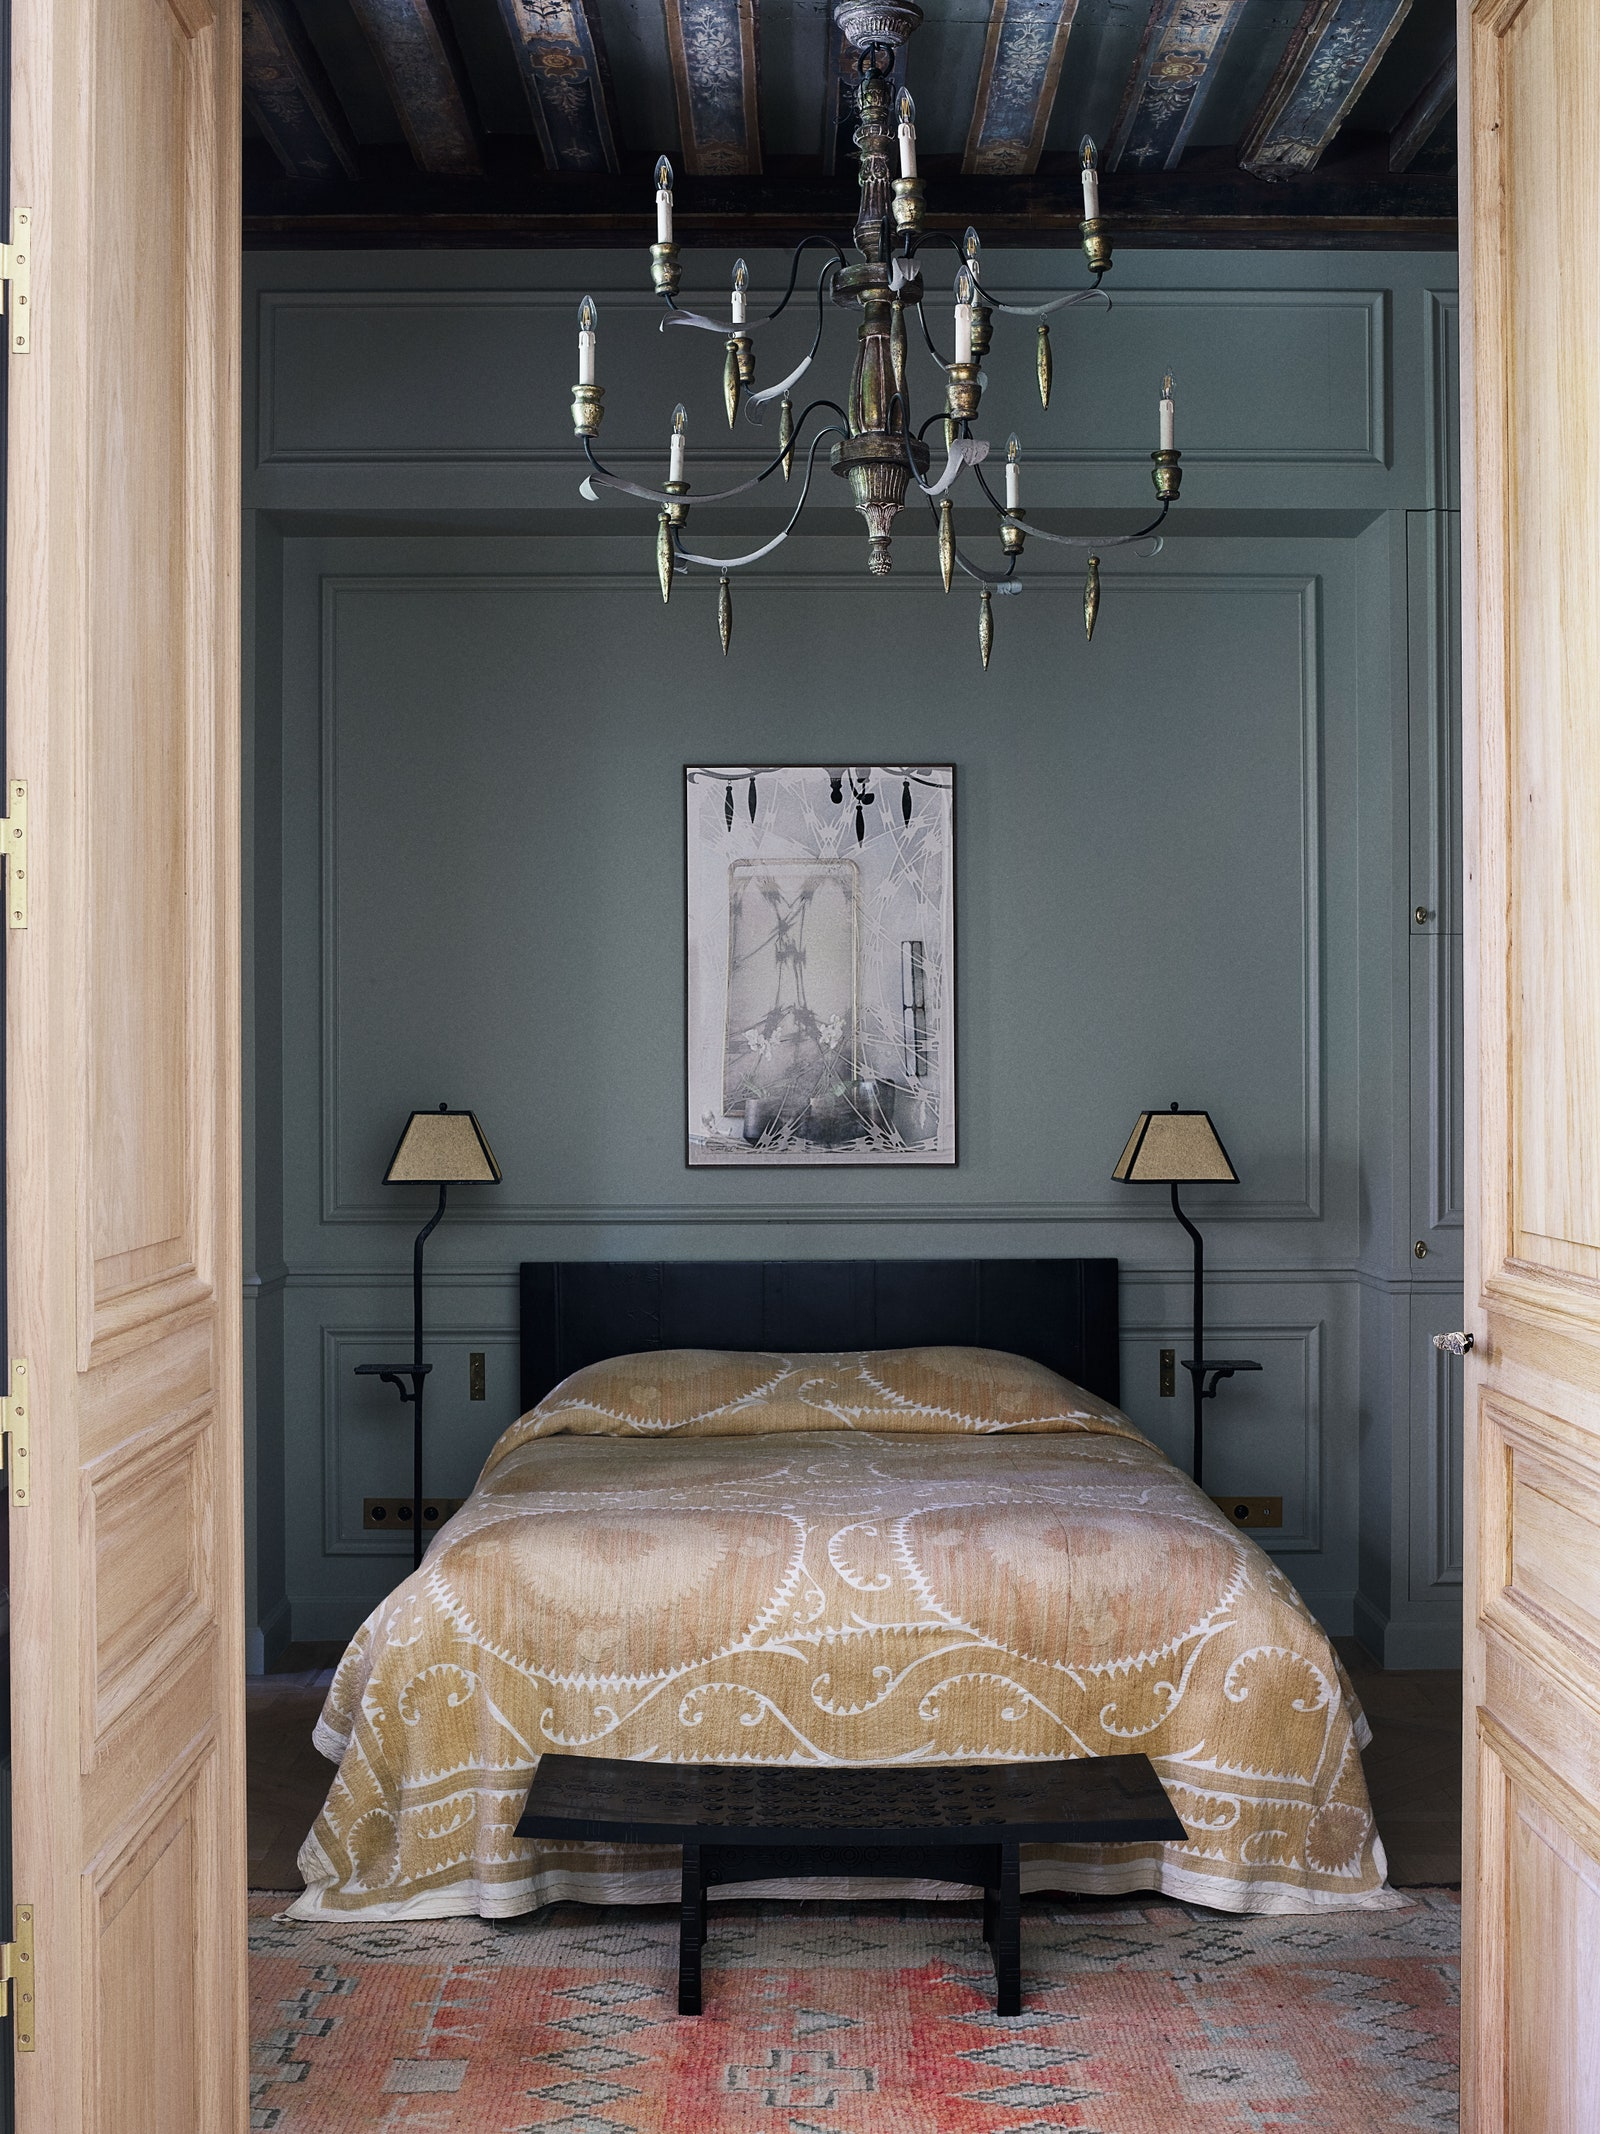 pThe Donatdesigned lacquer bed wears a textile from Uzbekistan. Donat also designed the bedside lamps and bench.p